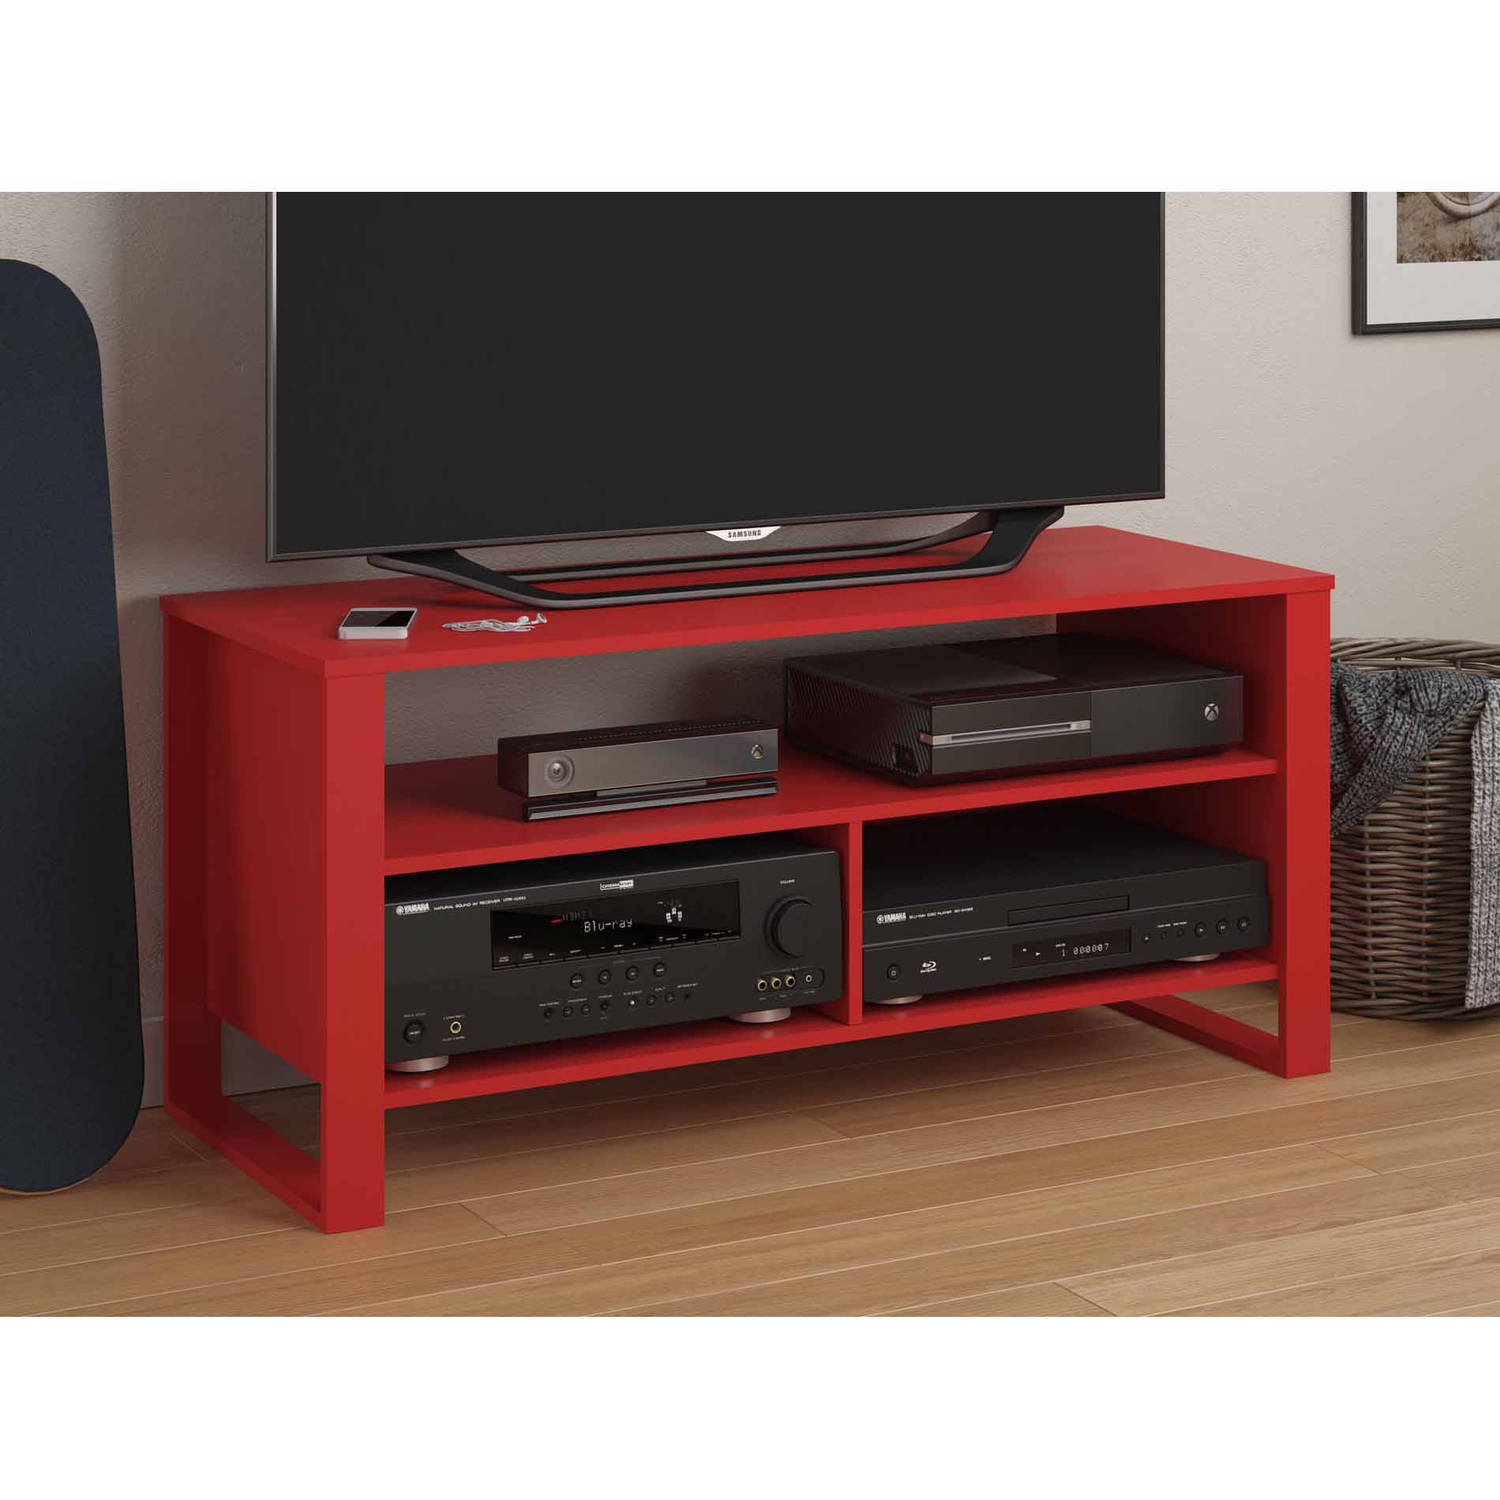 Mainstays Tv Stand For Tvs Up To 44 Walmart Com